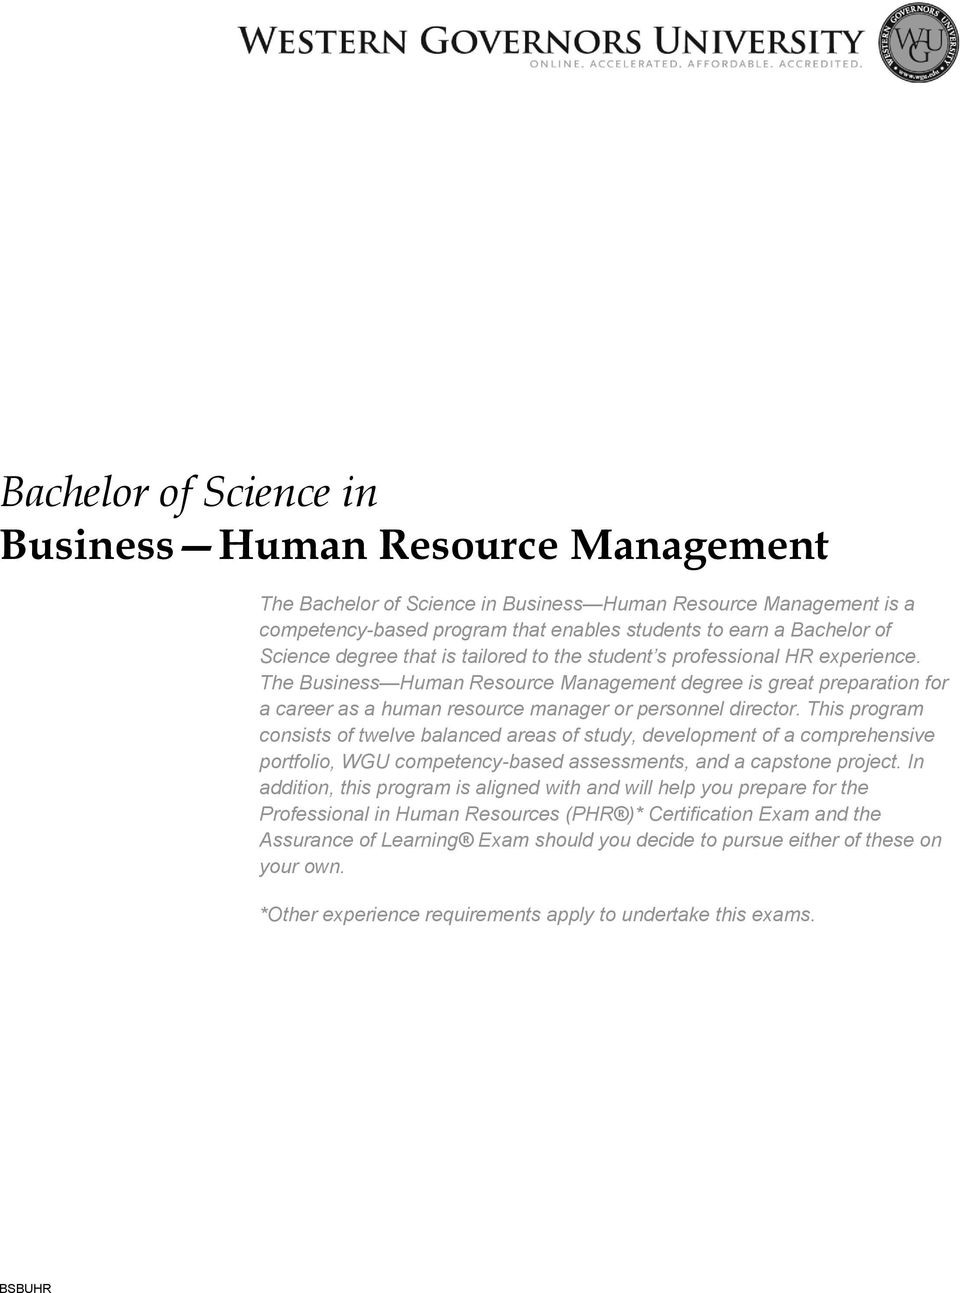 Bachelor of Science in Business Human Resource Management - PDF